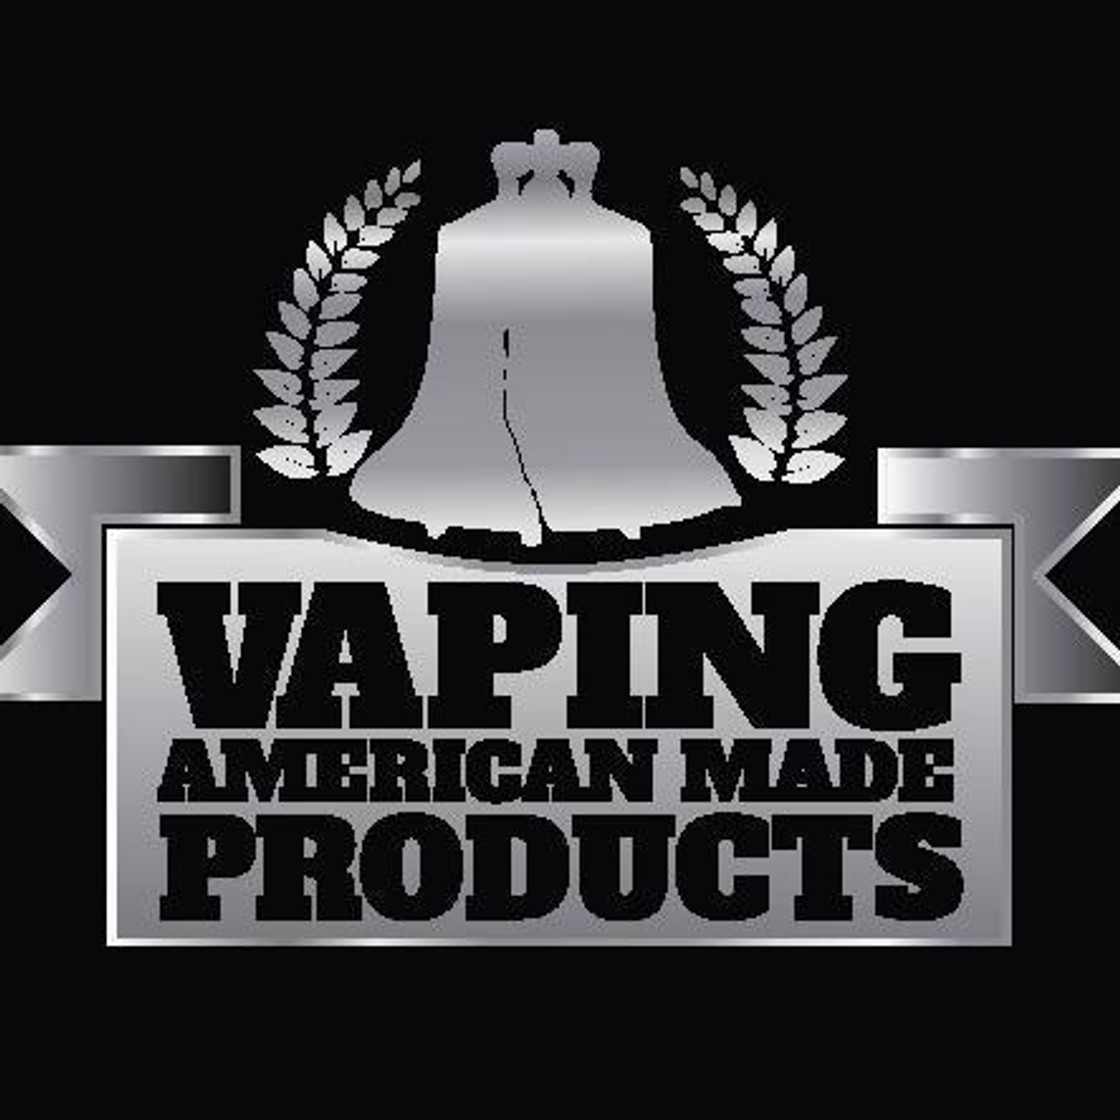 Vaping American Made Products